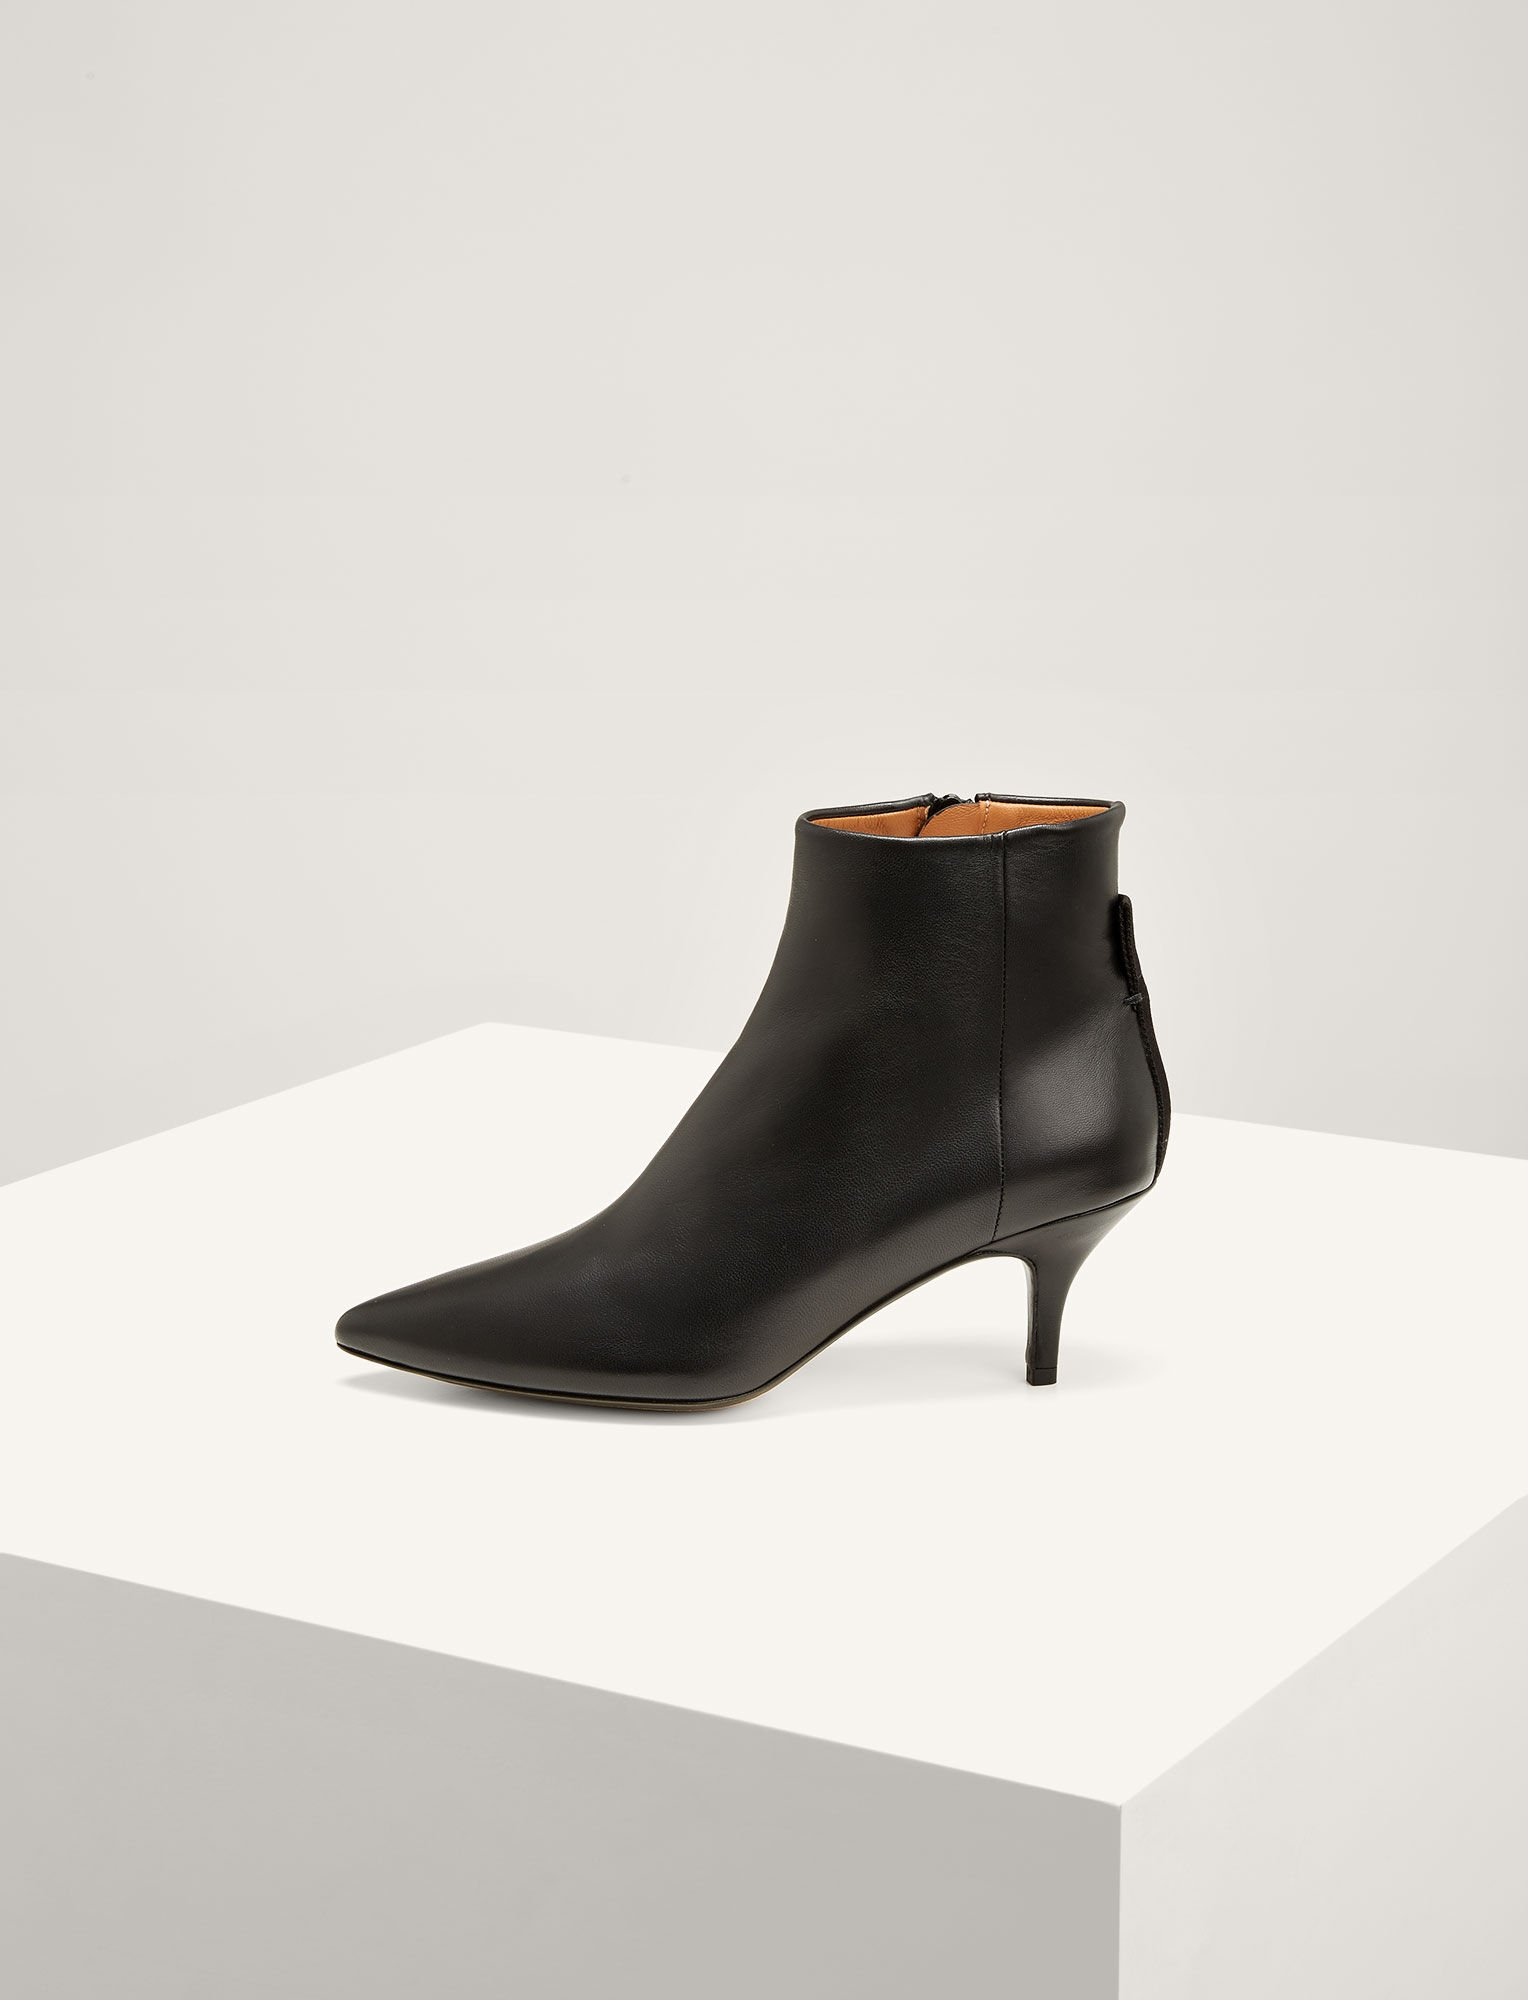 Joseph, The Sioux Pointed Boots, in BLACK